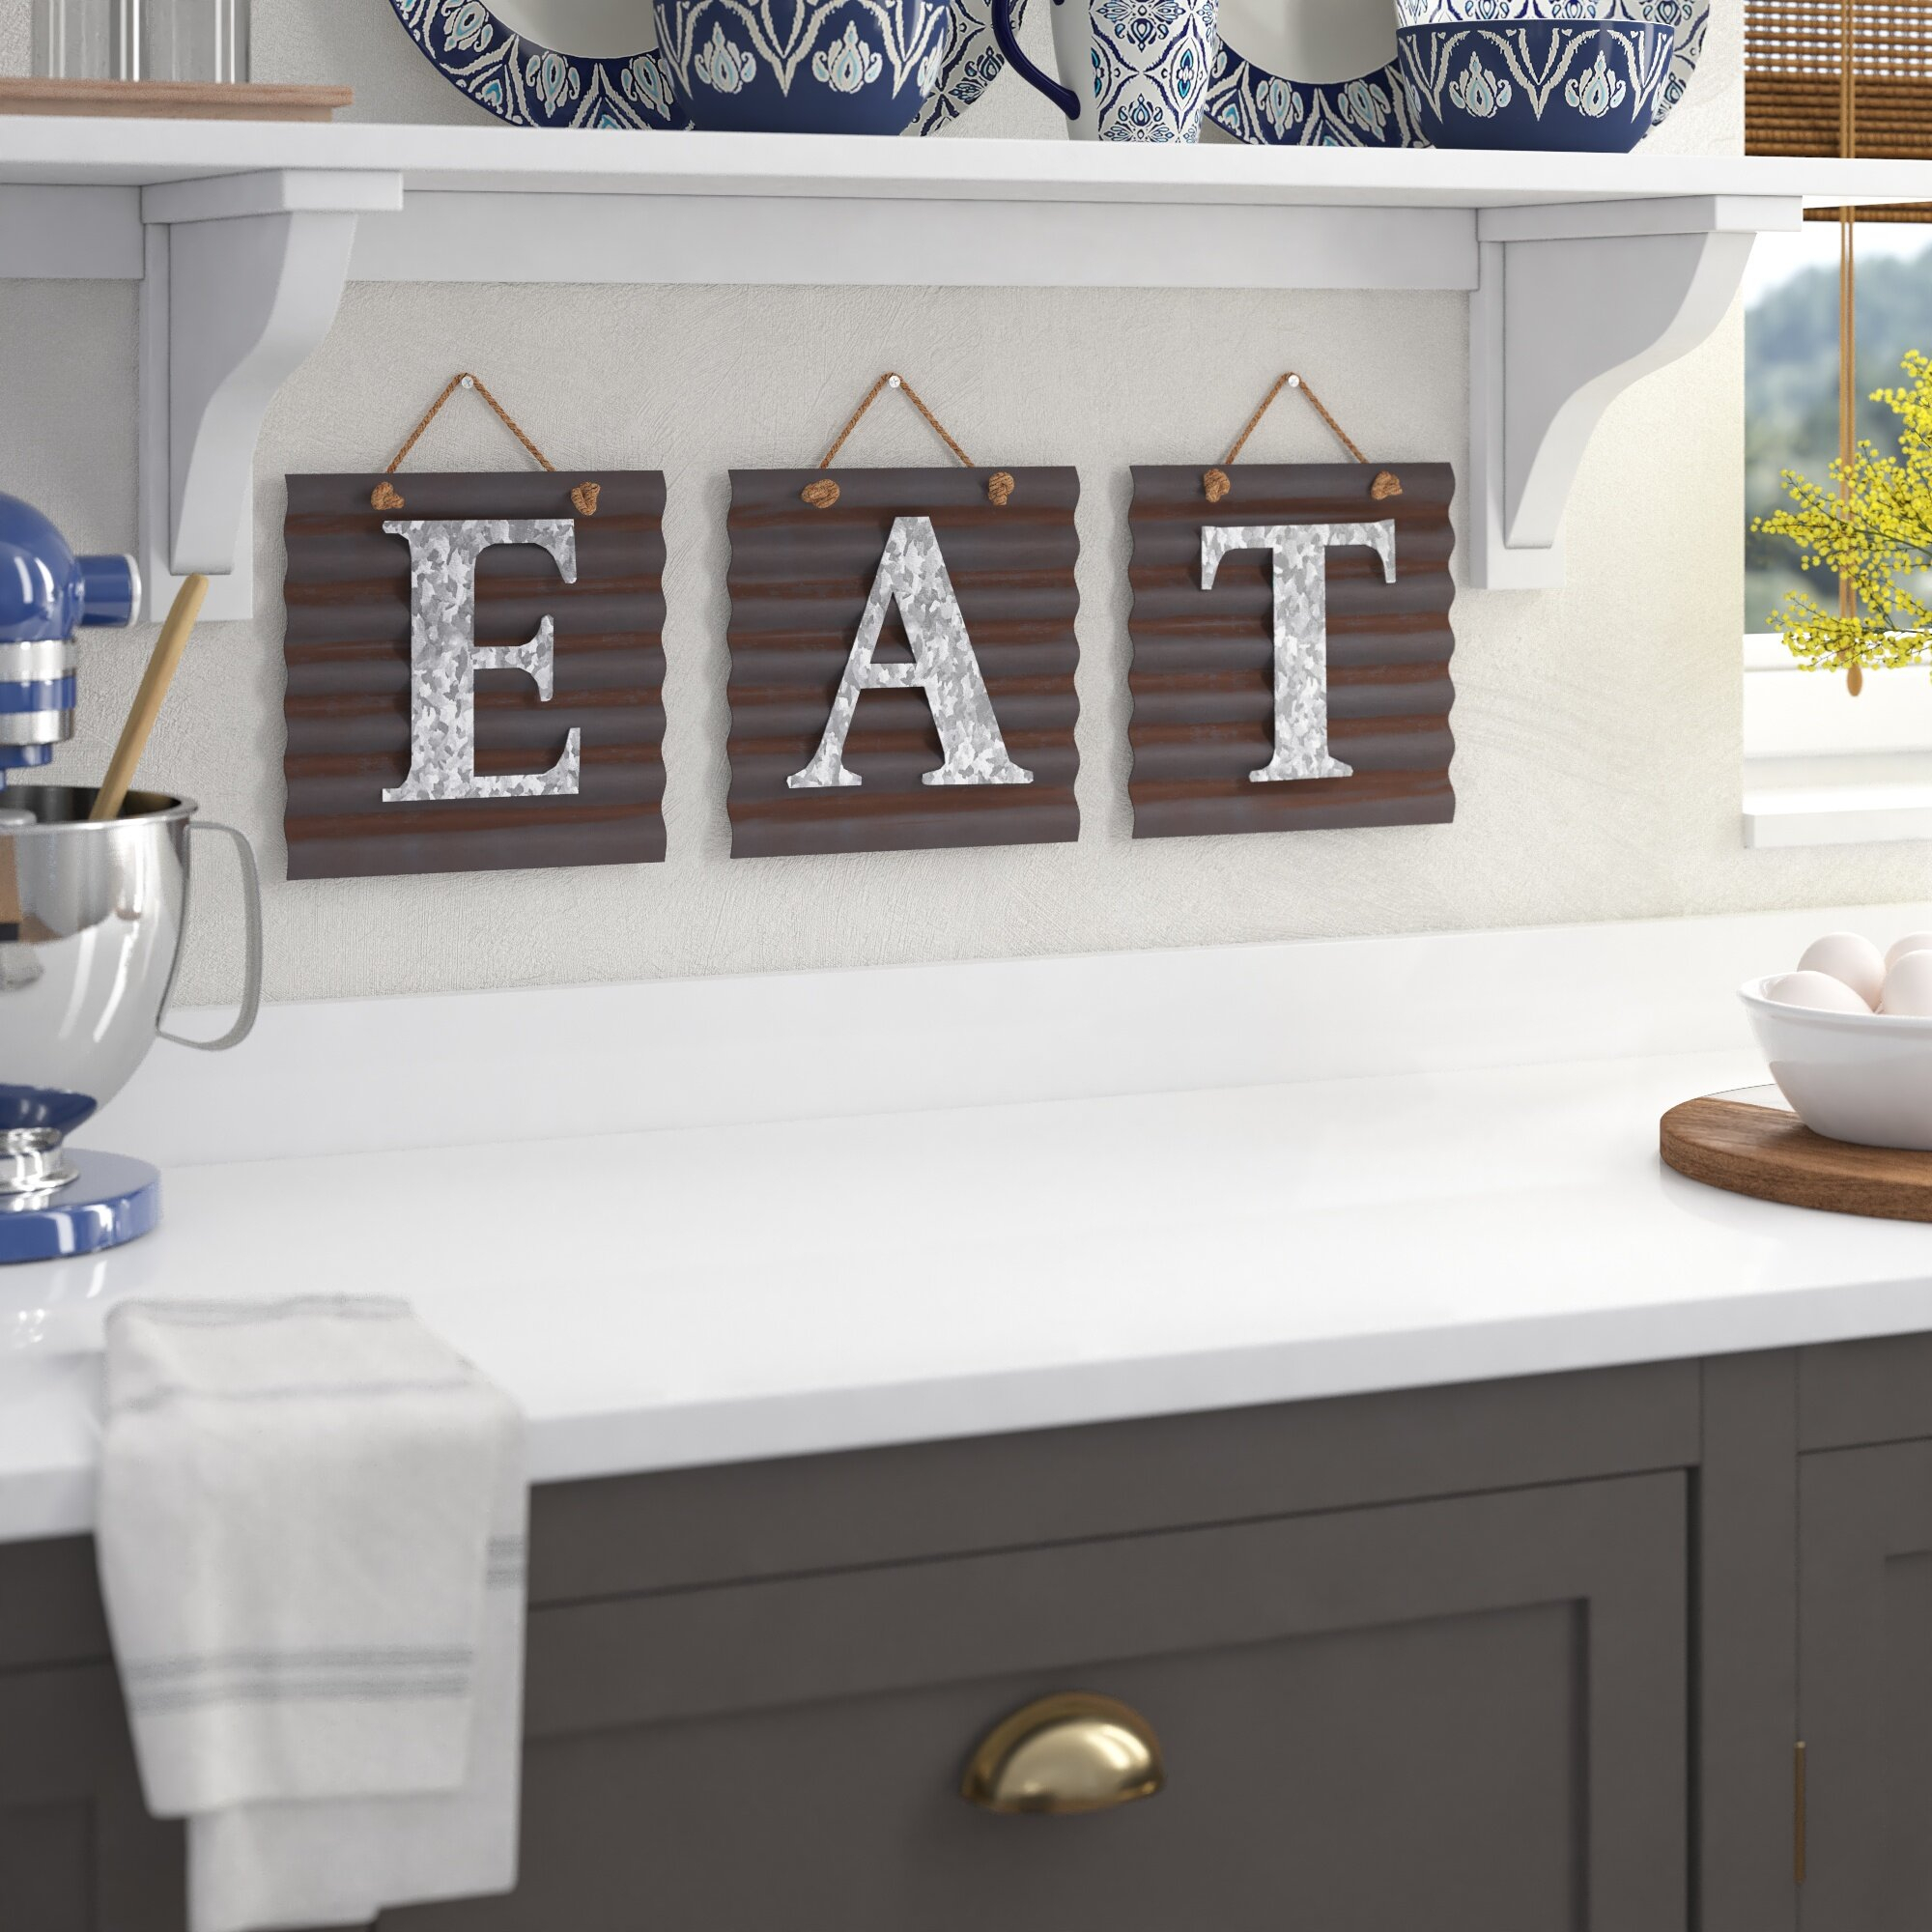 Eat Kitchen Signs | Wayfair Regarding Sign Wall Decor By Charlton Home (Gallery 12 of 30)